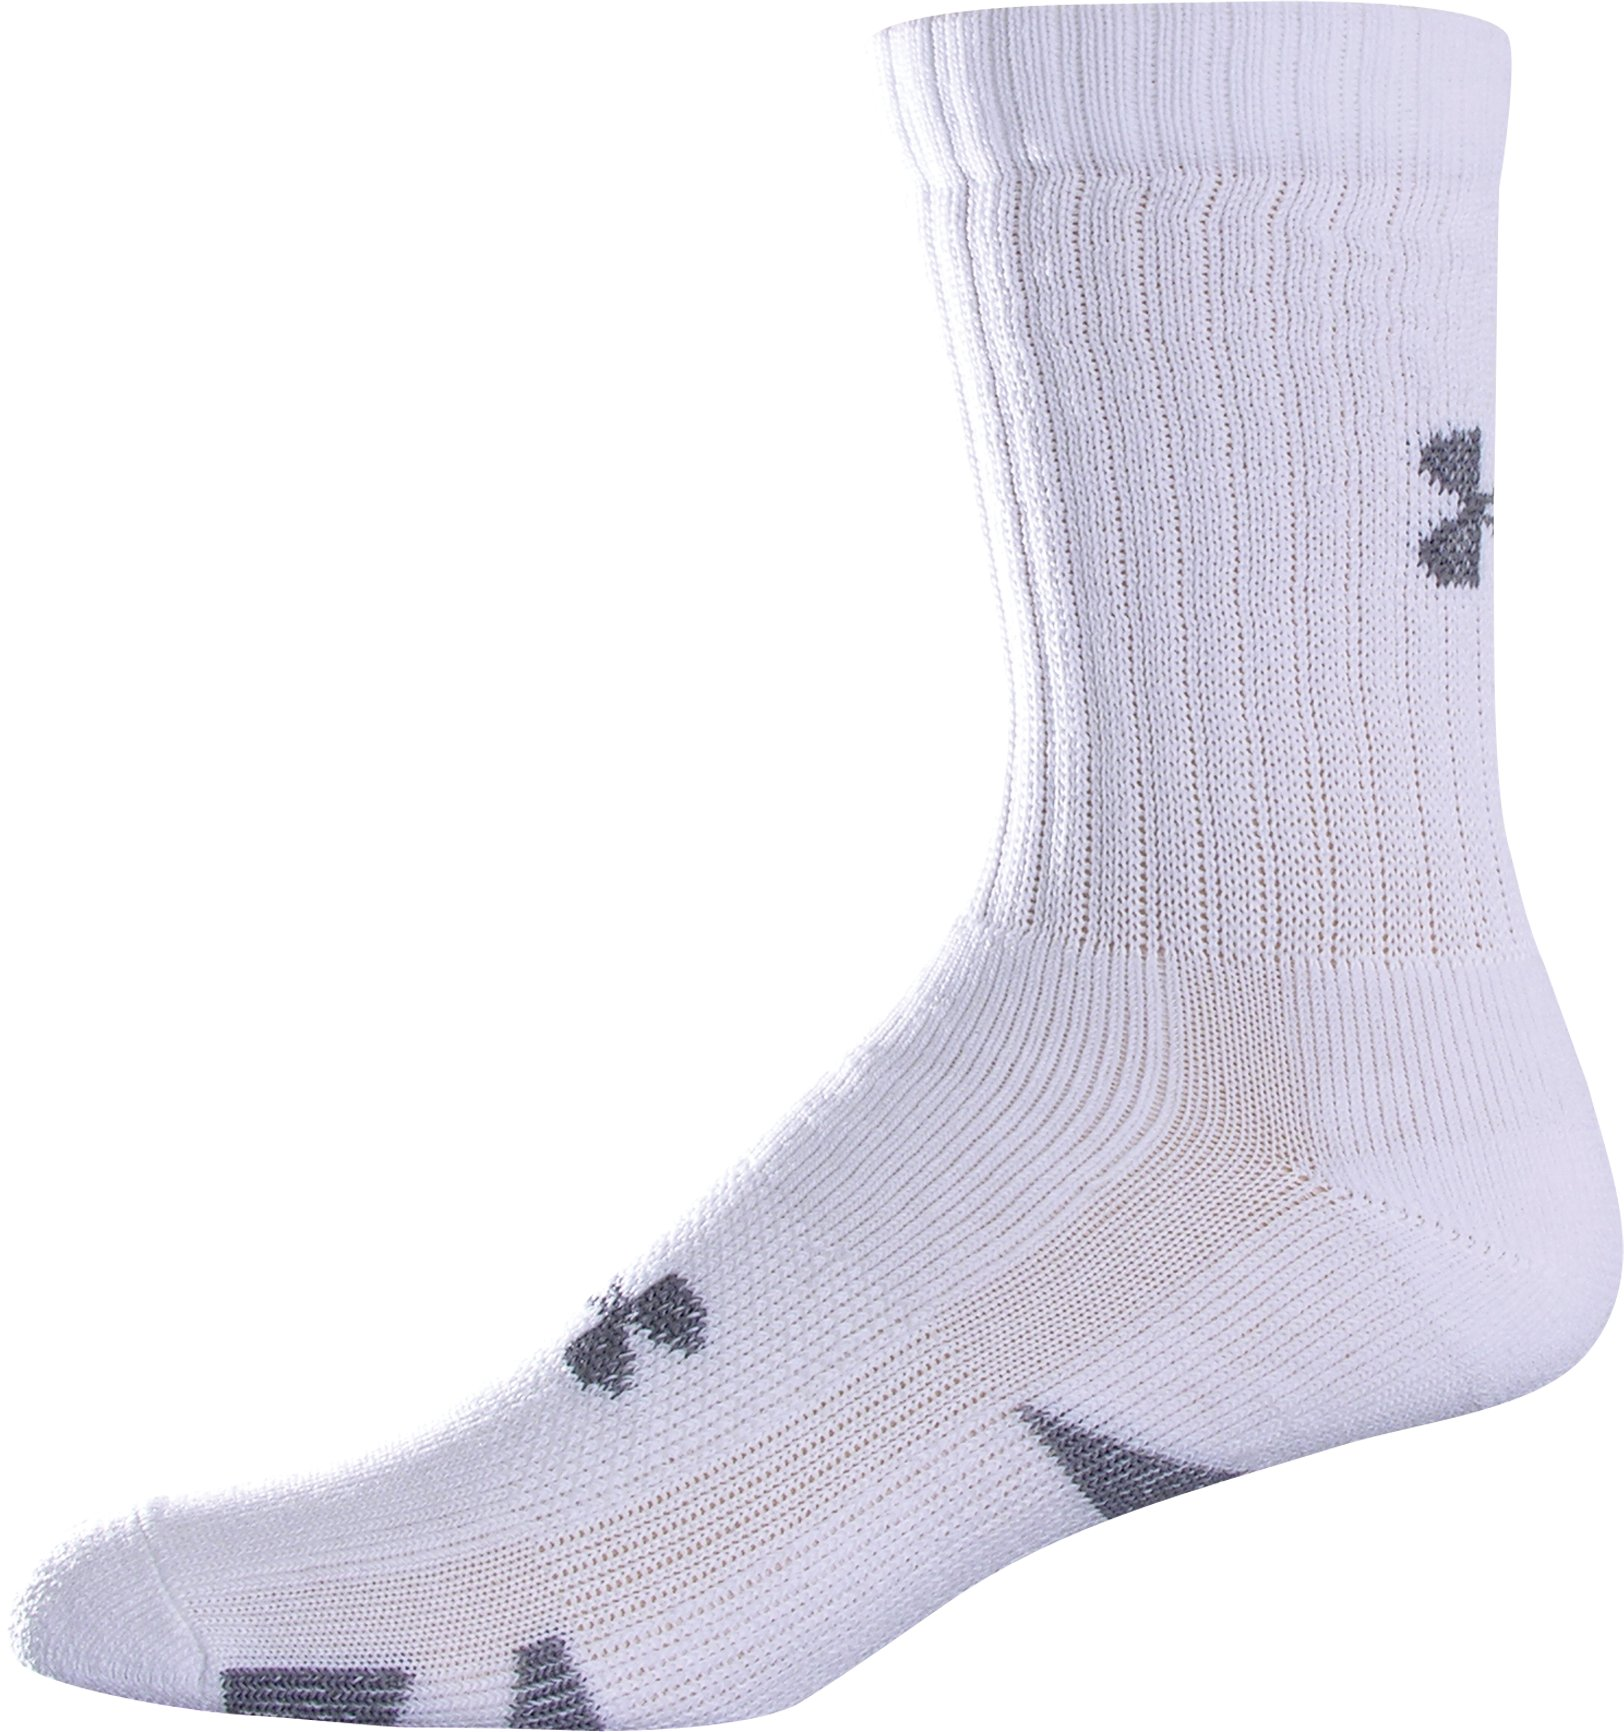 HeatGear® Trainer Crew Socks 4-Pack, White, undefined